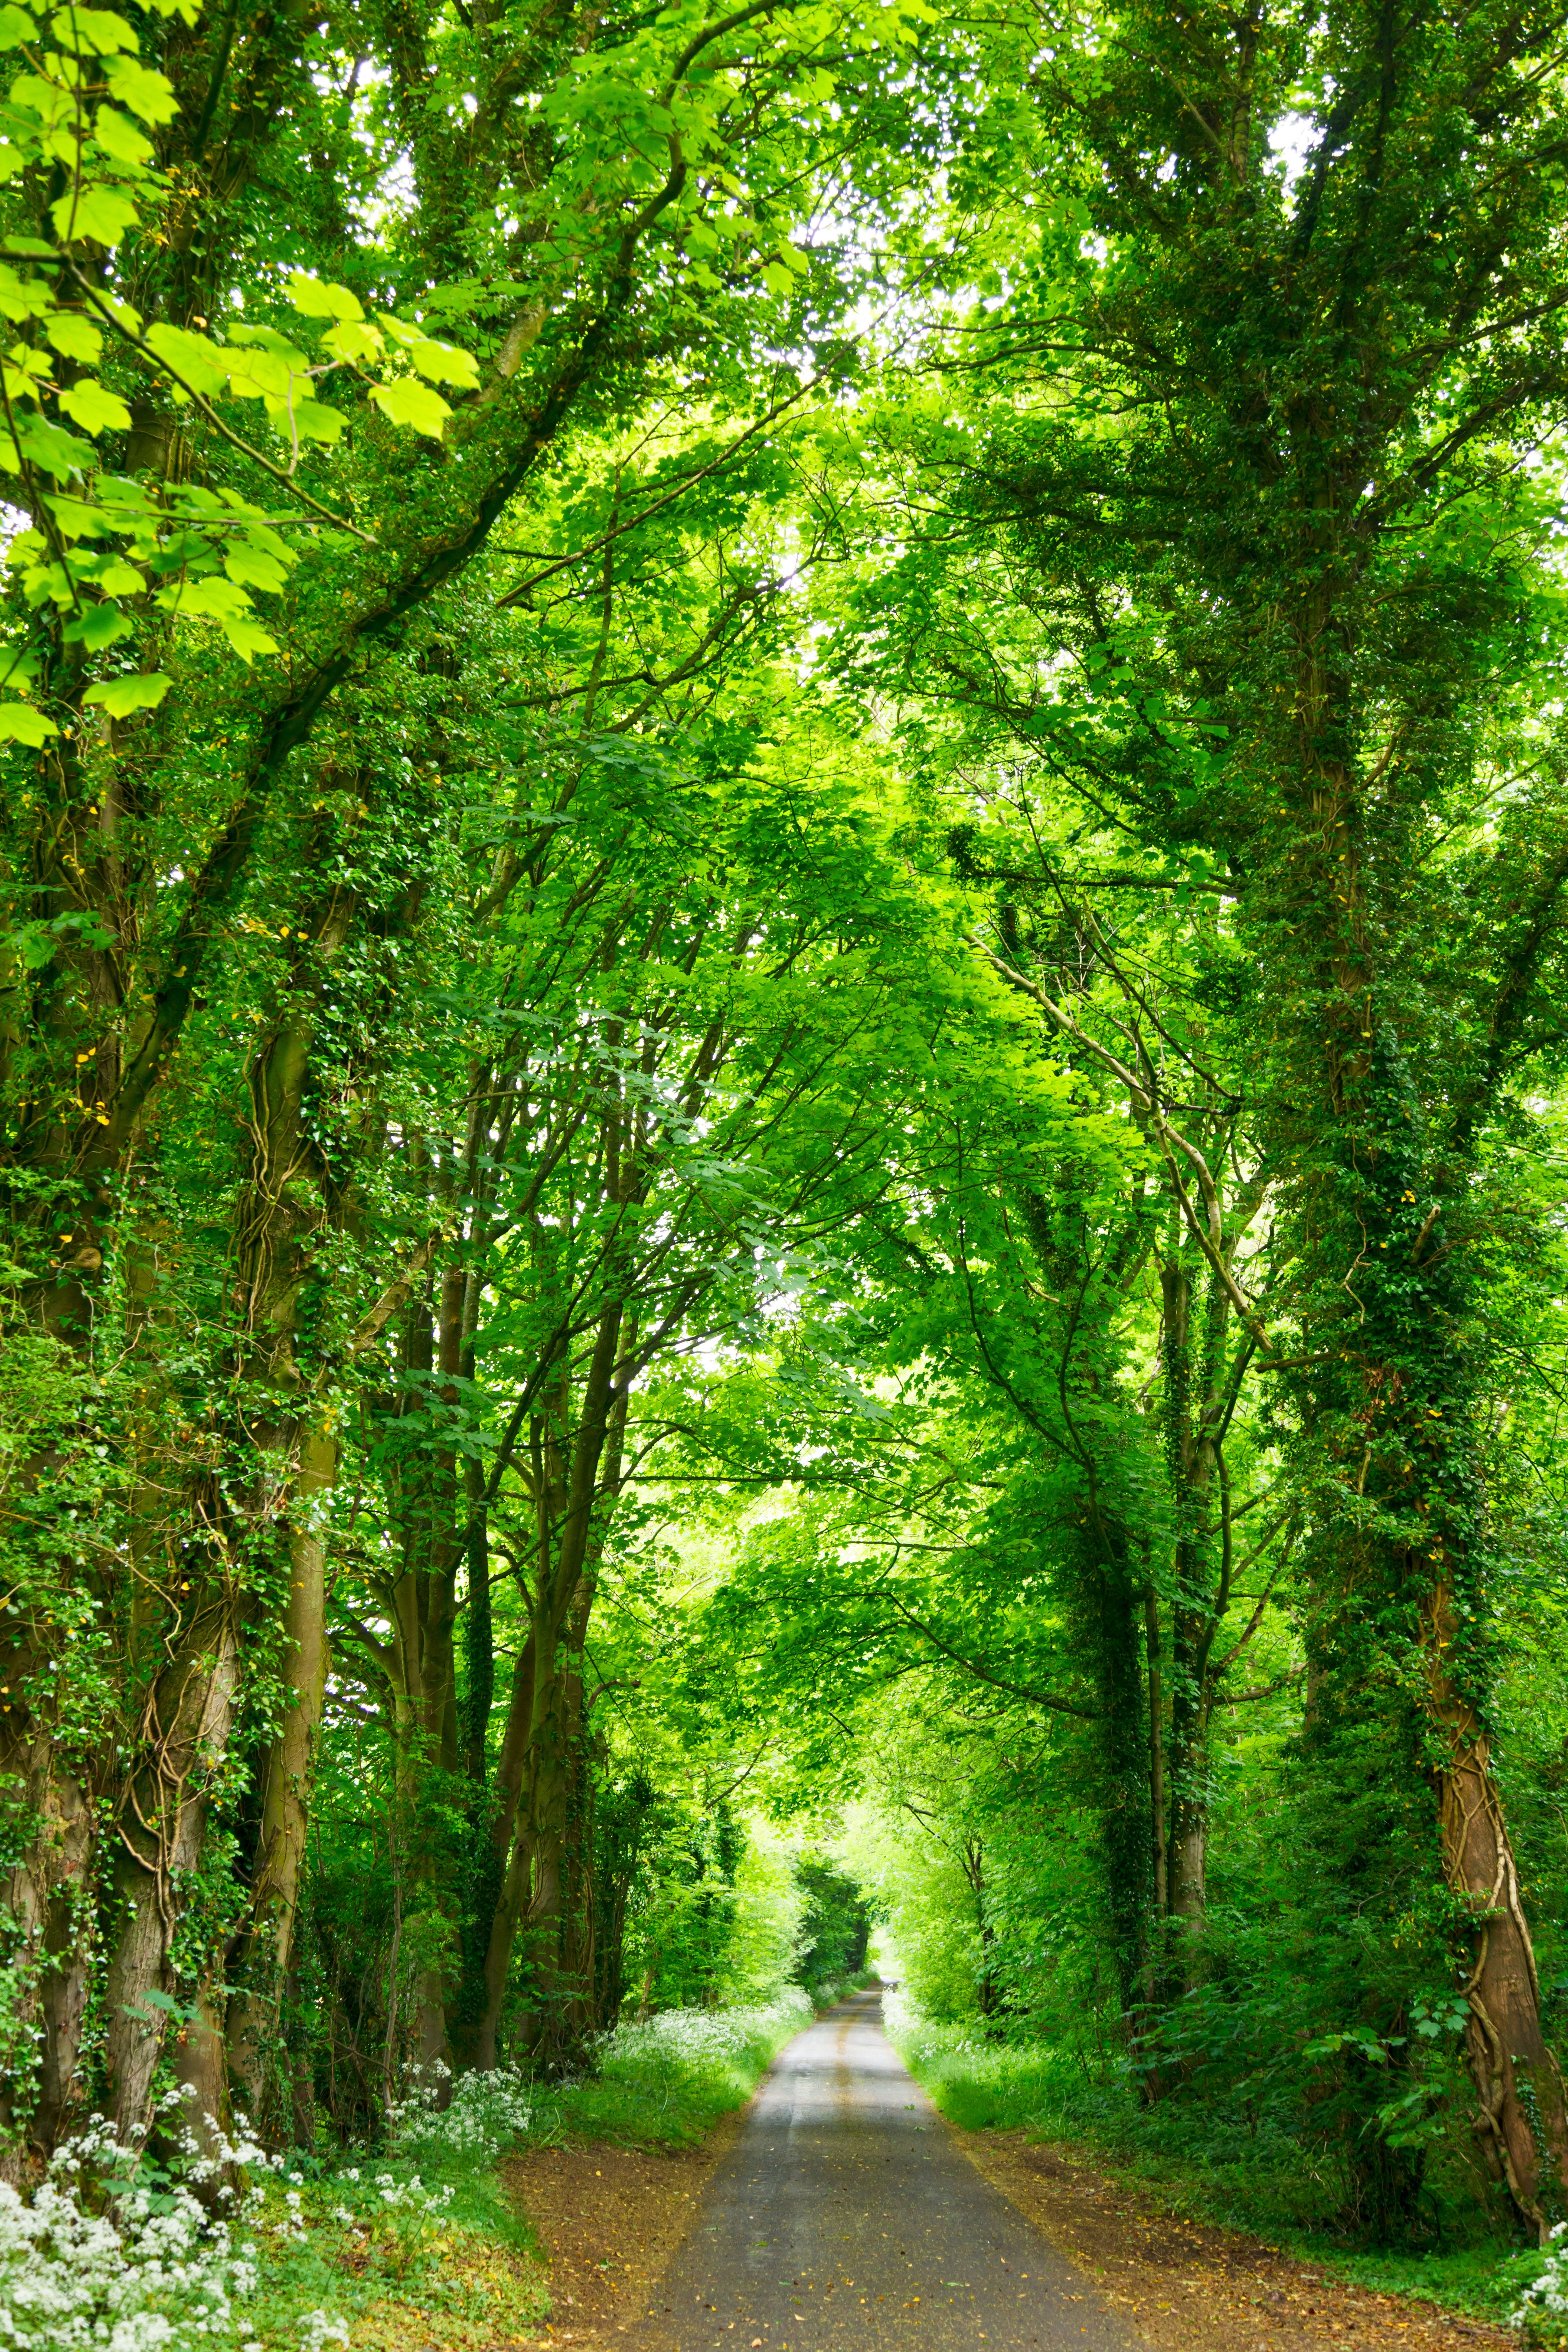 [HD Wallpaper] A narrow road lined with fresh green trees